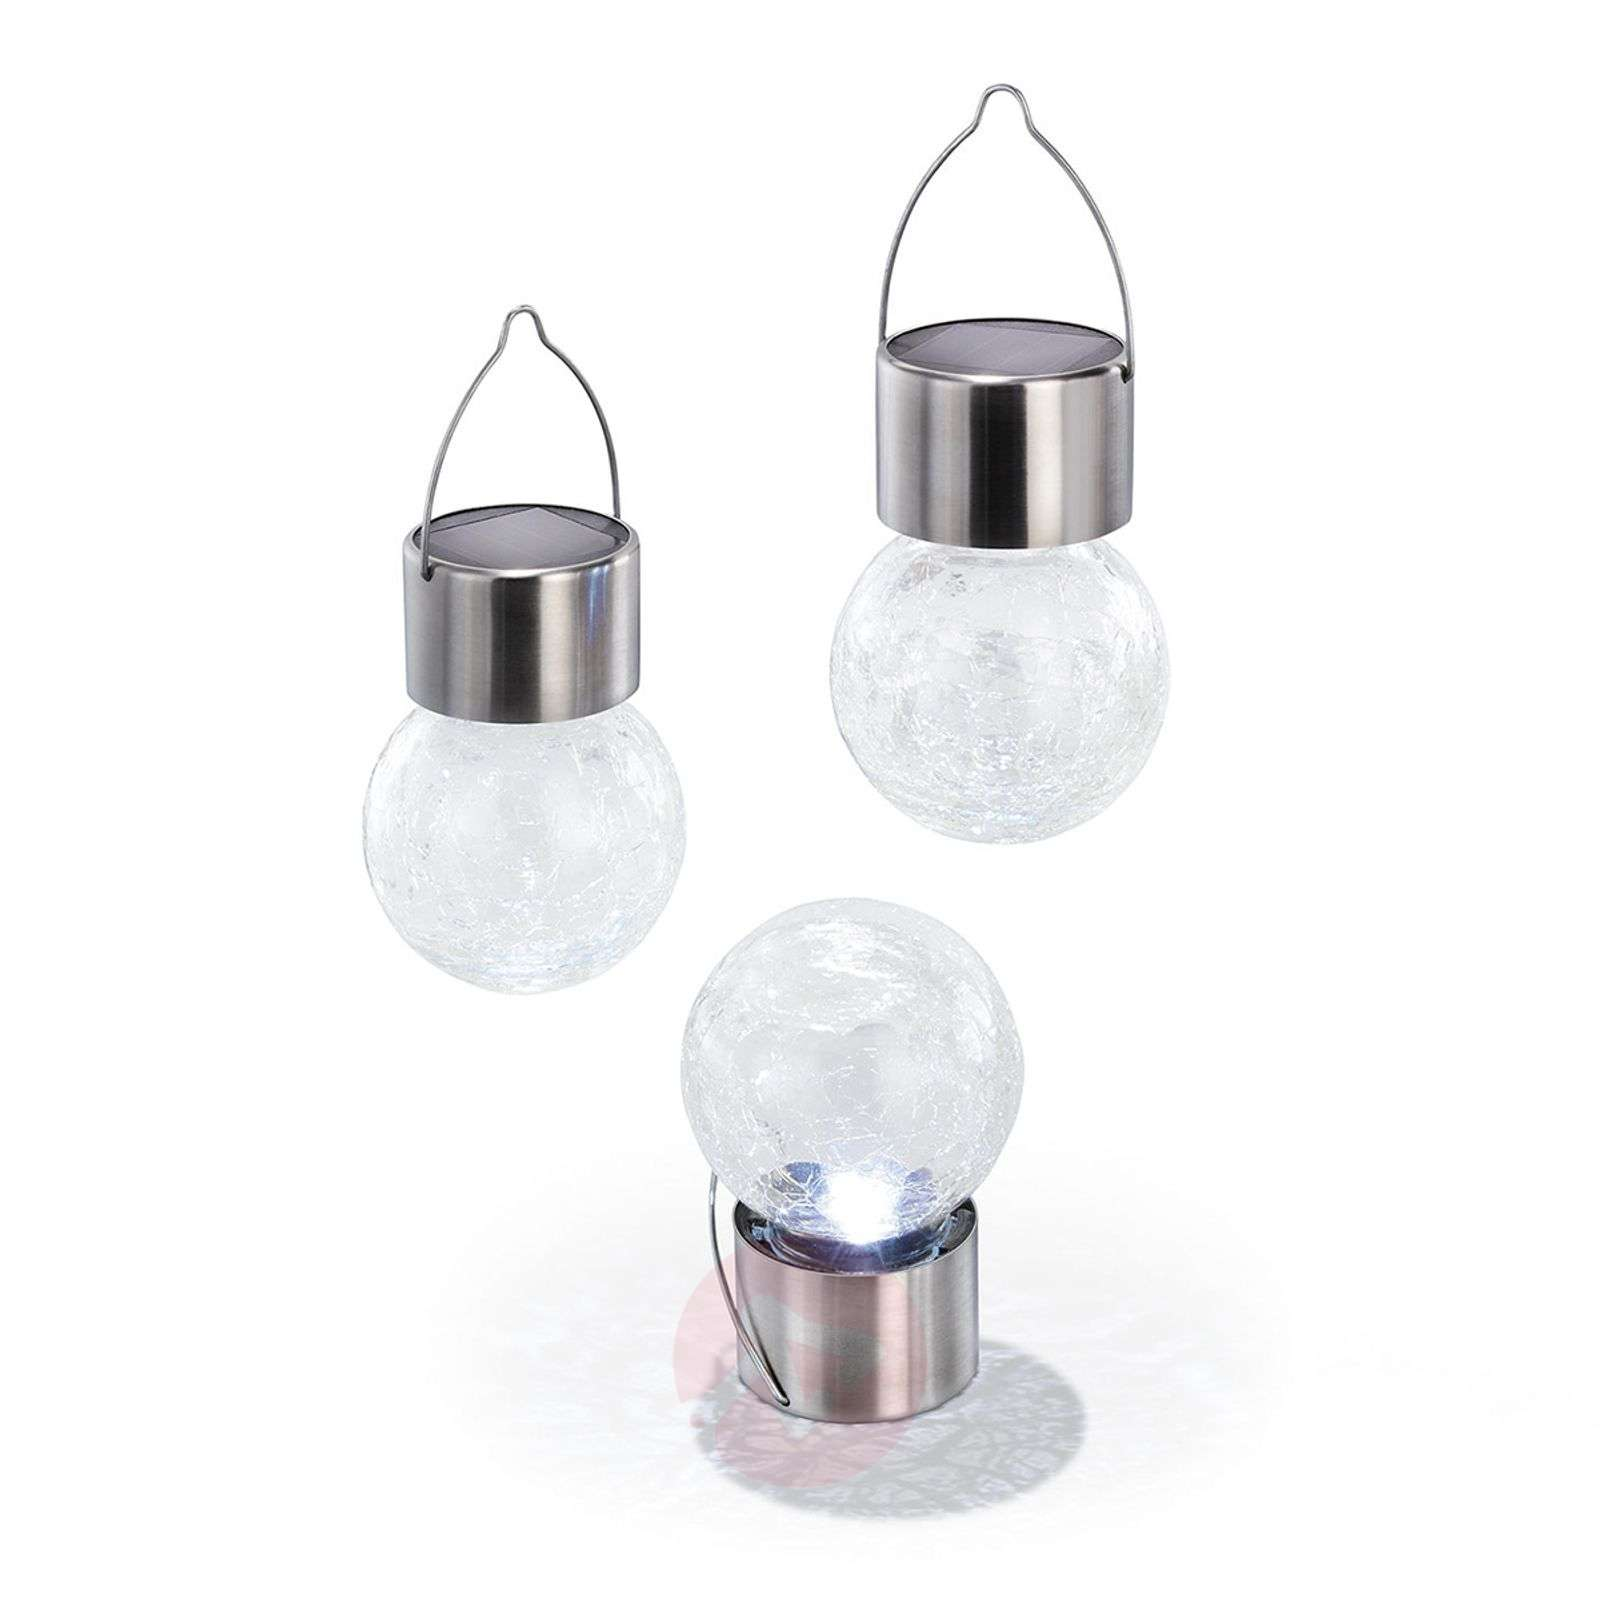 3 led zonne-energie lichtset Crackle Ball 6.000 K-3012536-01